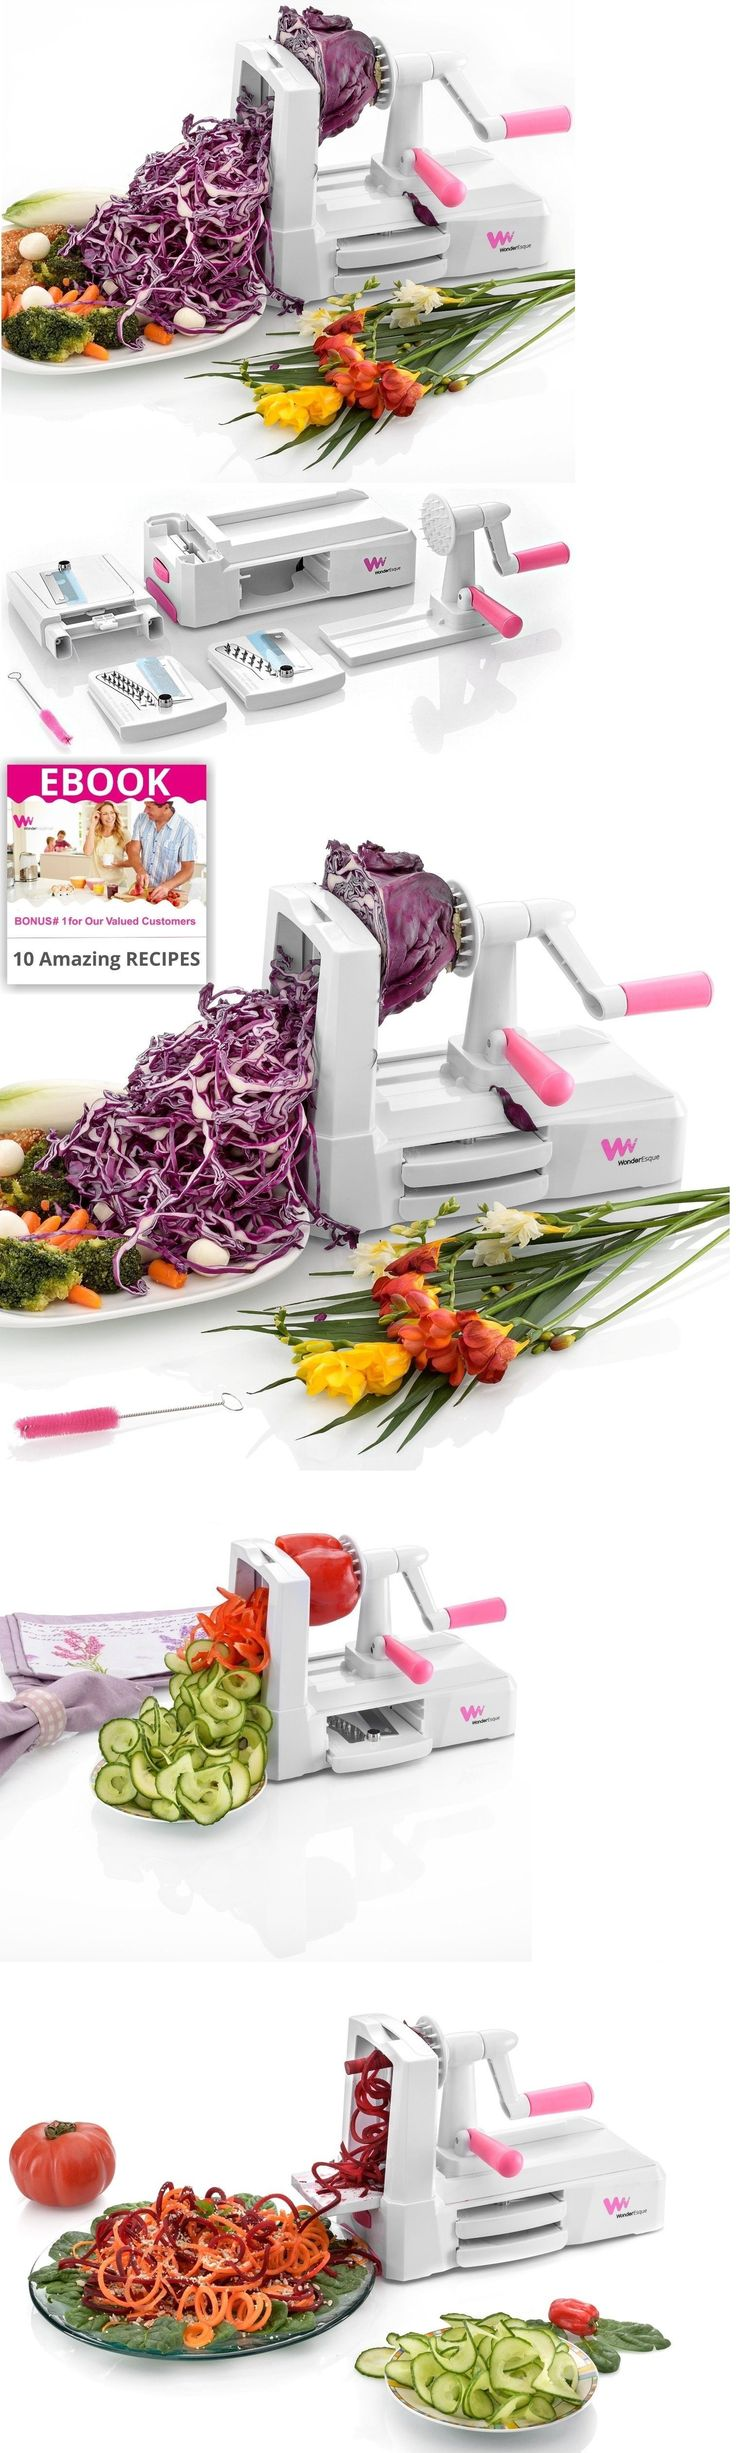 Slicers 134726: Zucchini Zoodle Noodle Spiralizer Vegetable Spaghetti Pasta Maker Slicer Spiral -> BUY IT NOW ONLY: $33.14 on eBay!